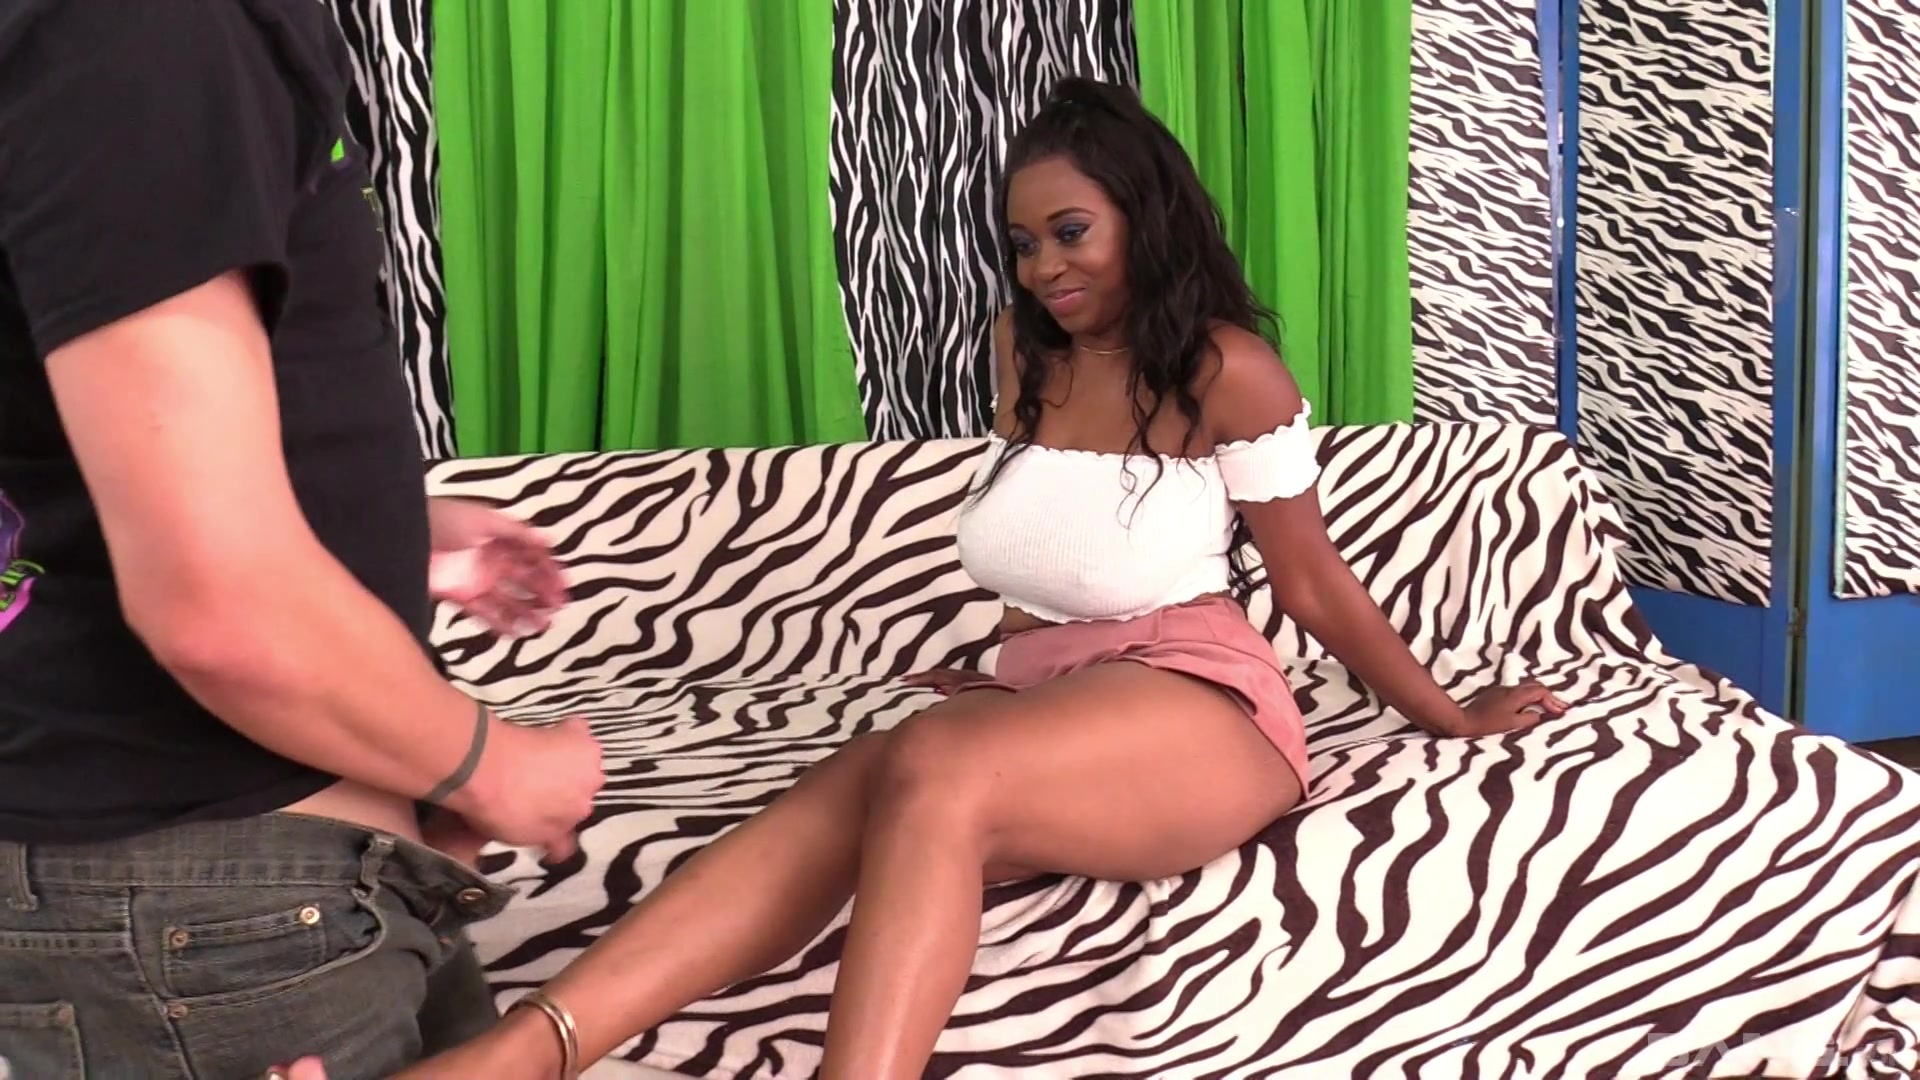 Chubby and busty ebony shows her fucking skills to her friend